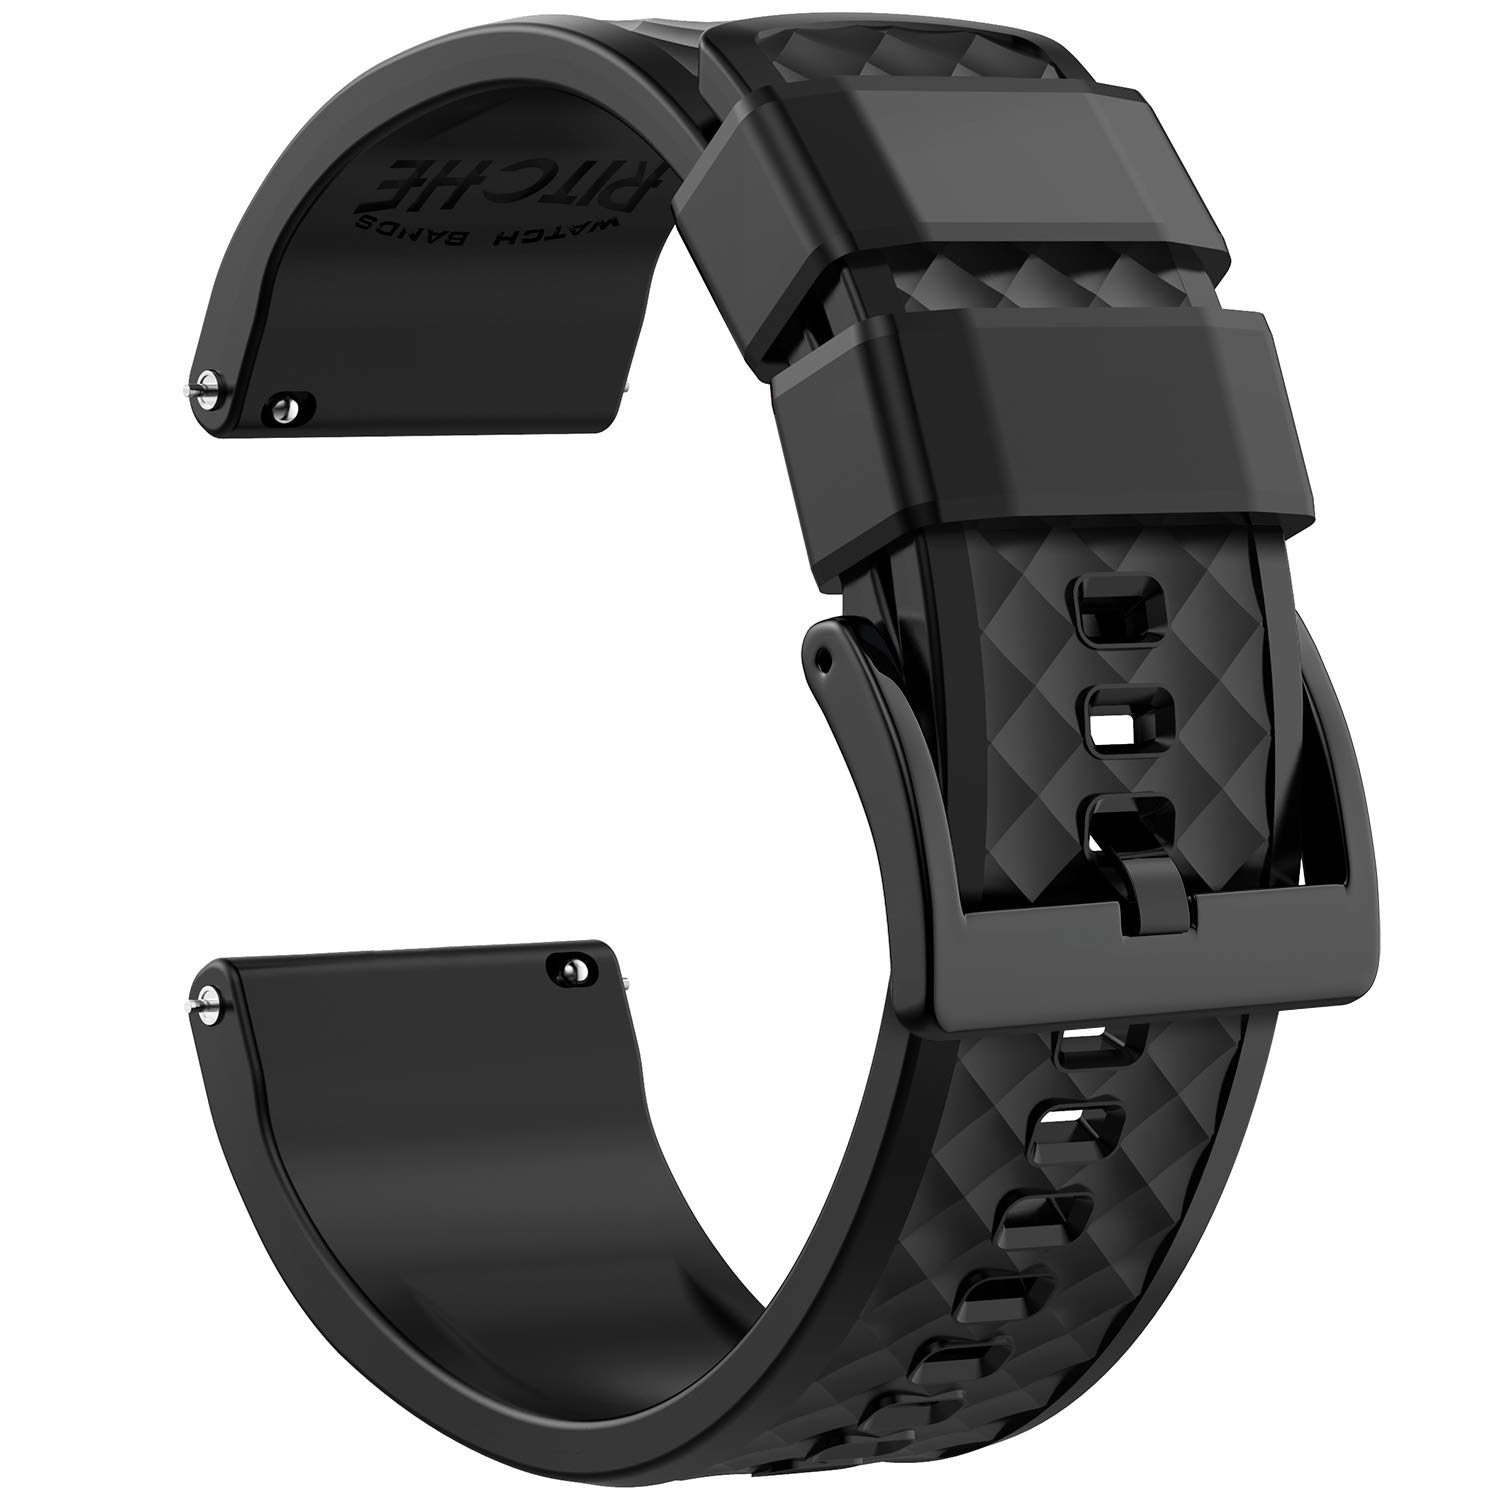 22mm Silicone Watch Bands Compatible with Samsung Gear S3 Classic Watch Quick Release Rubber Watch Bands for Men by Ritche